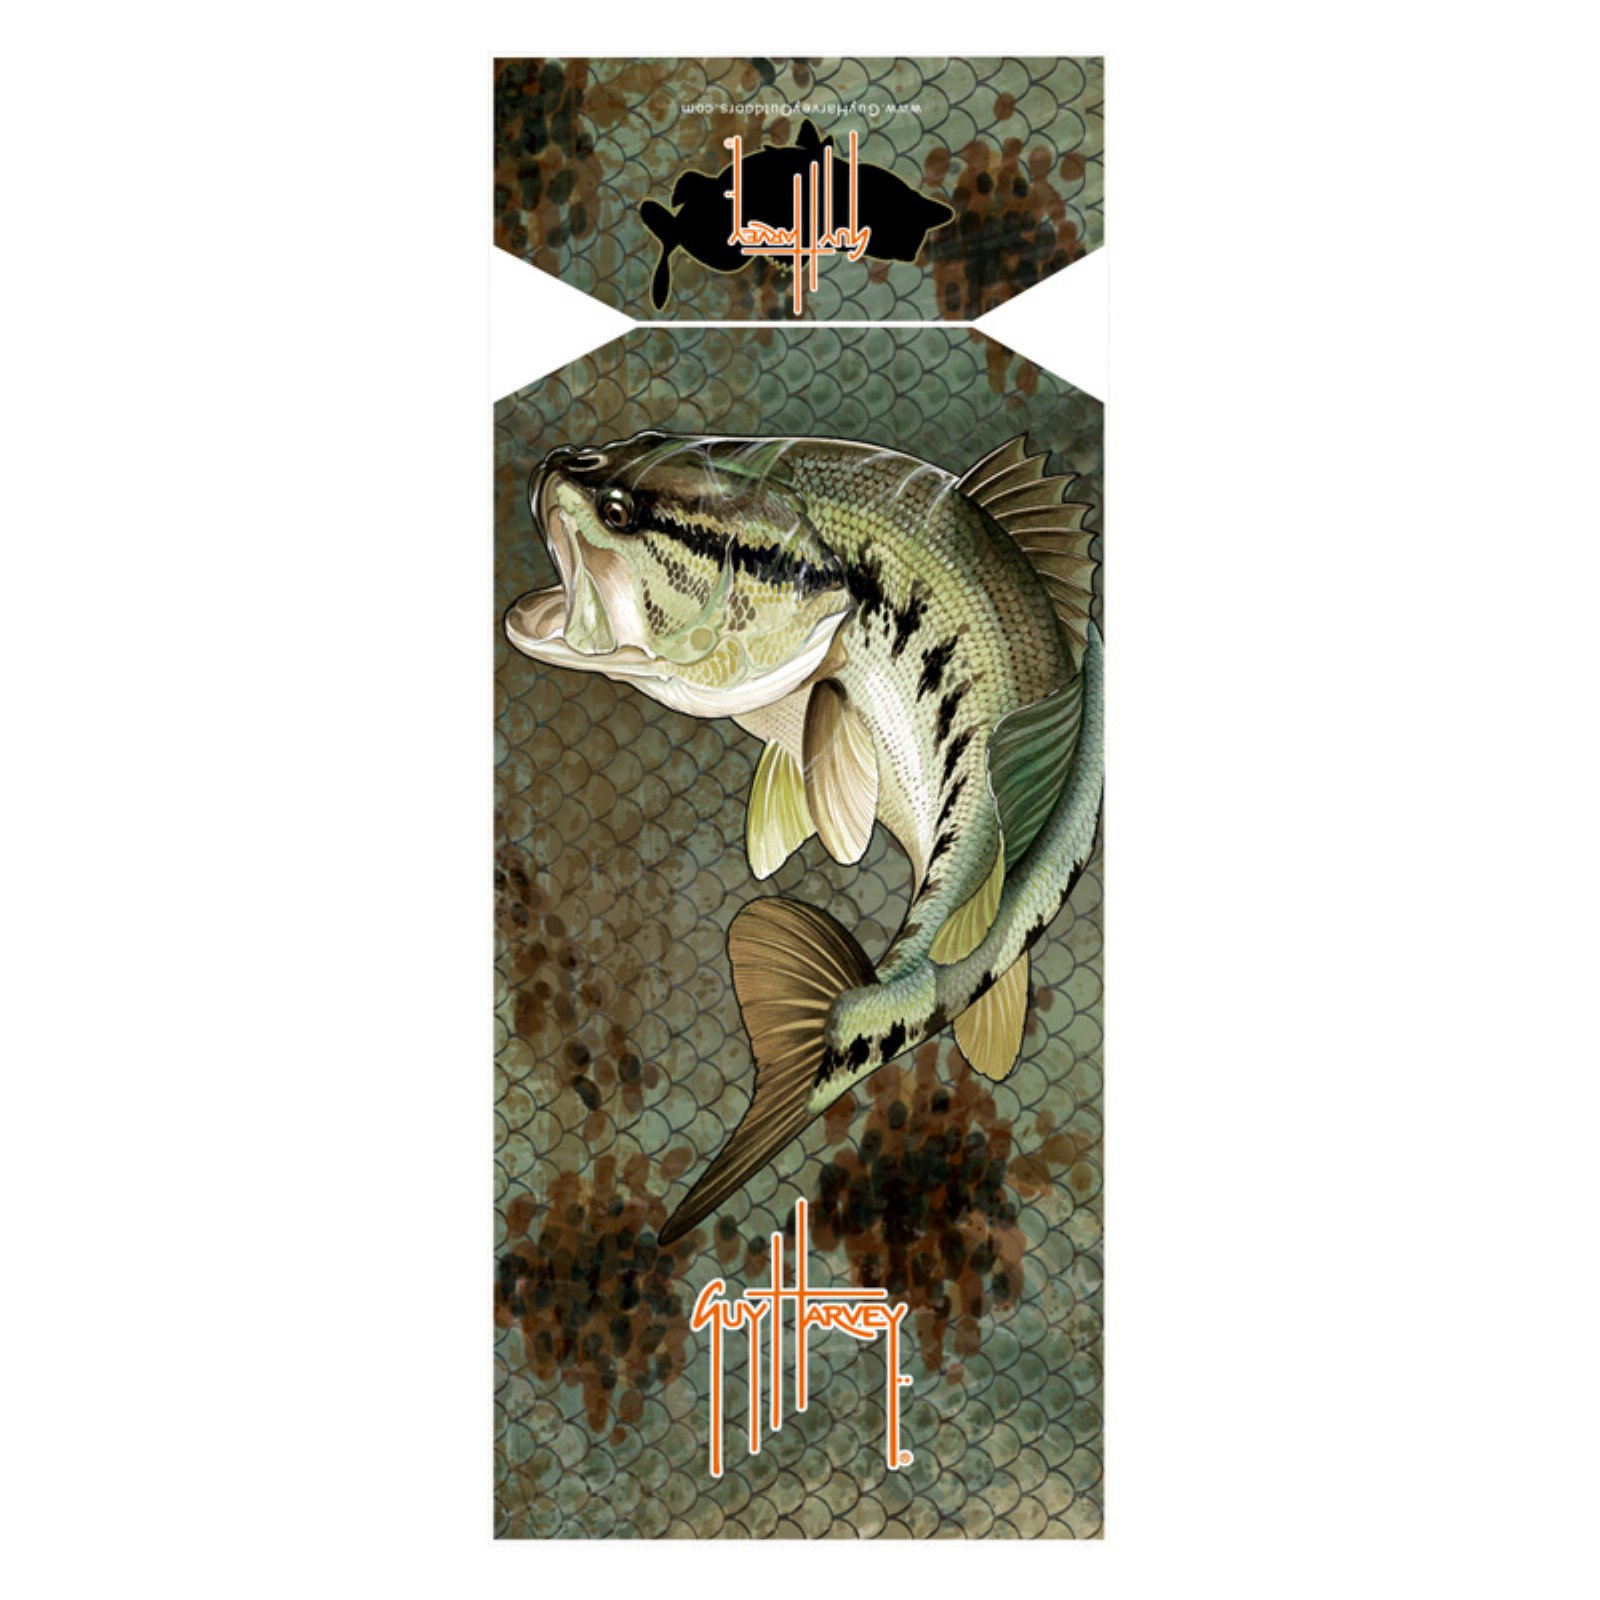 Guy Harvey Bass Camo Sea Lounge Chair Beach Towel with Hood